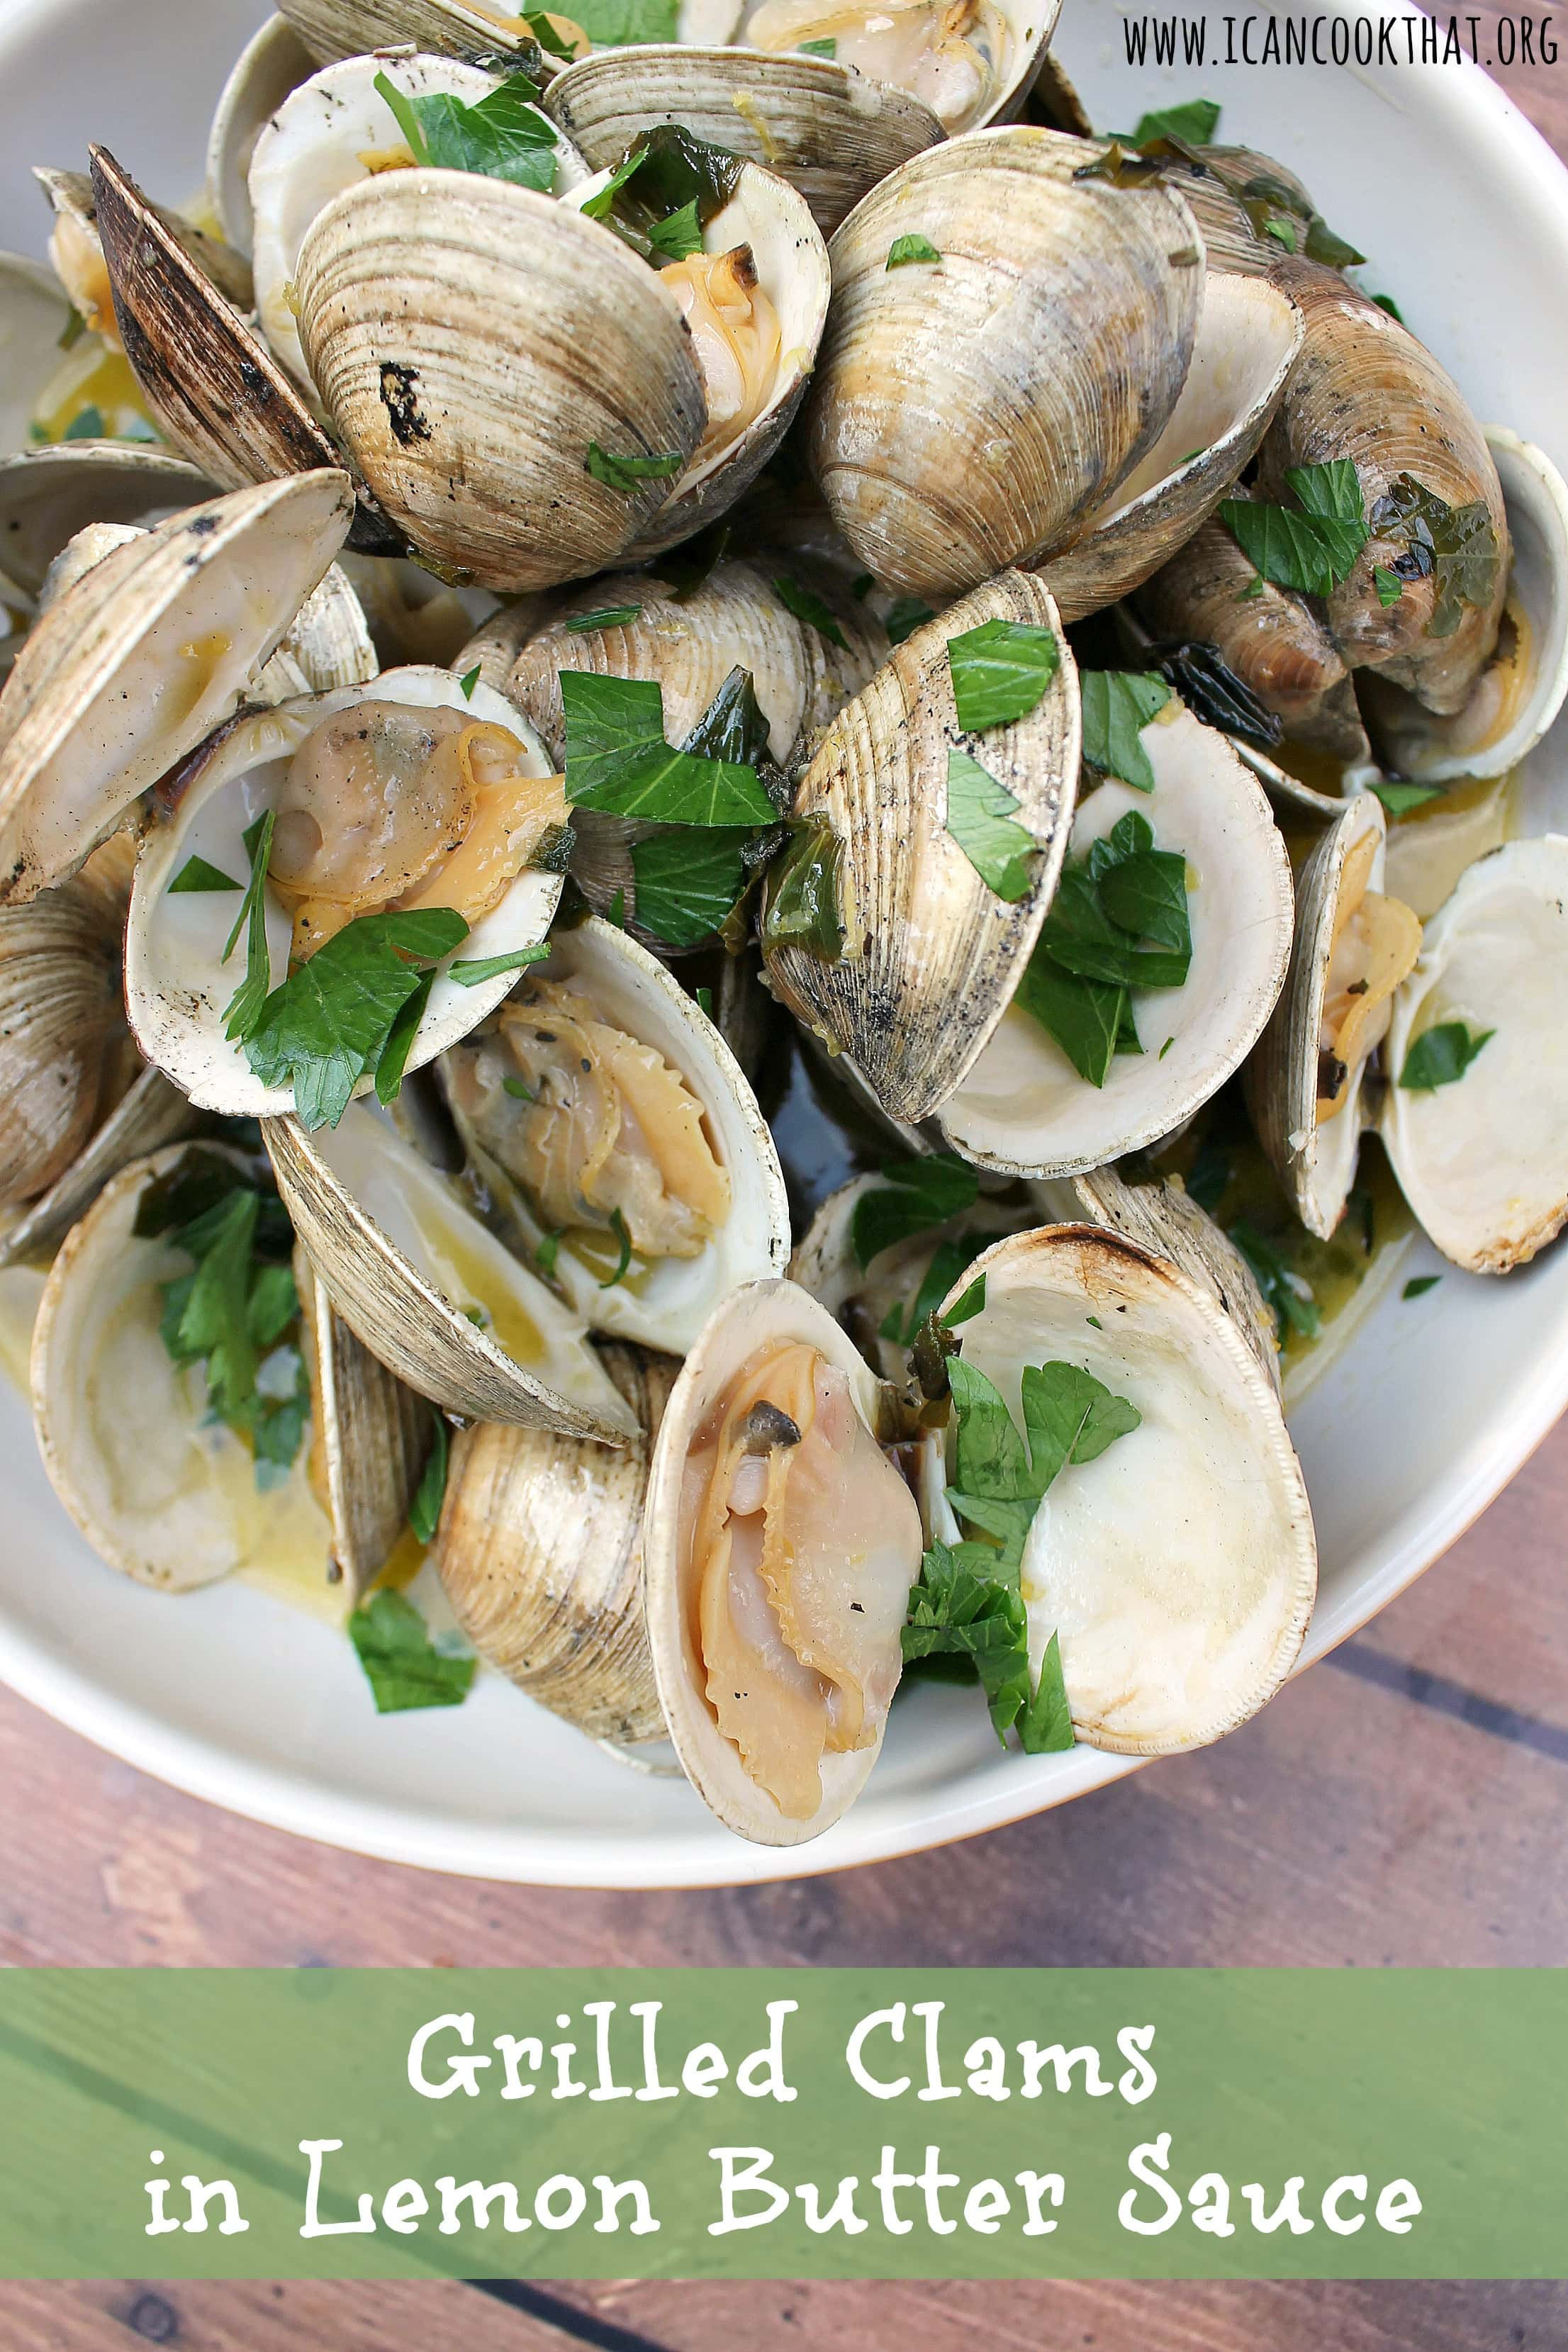 Grilled Clams in Lemon Butter Sauce